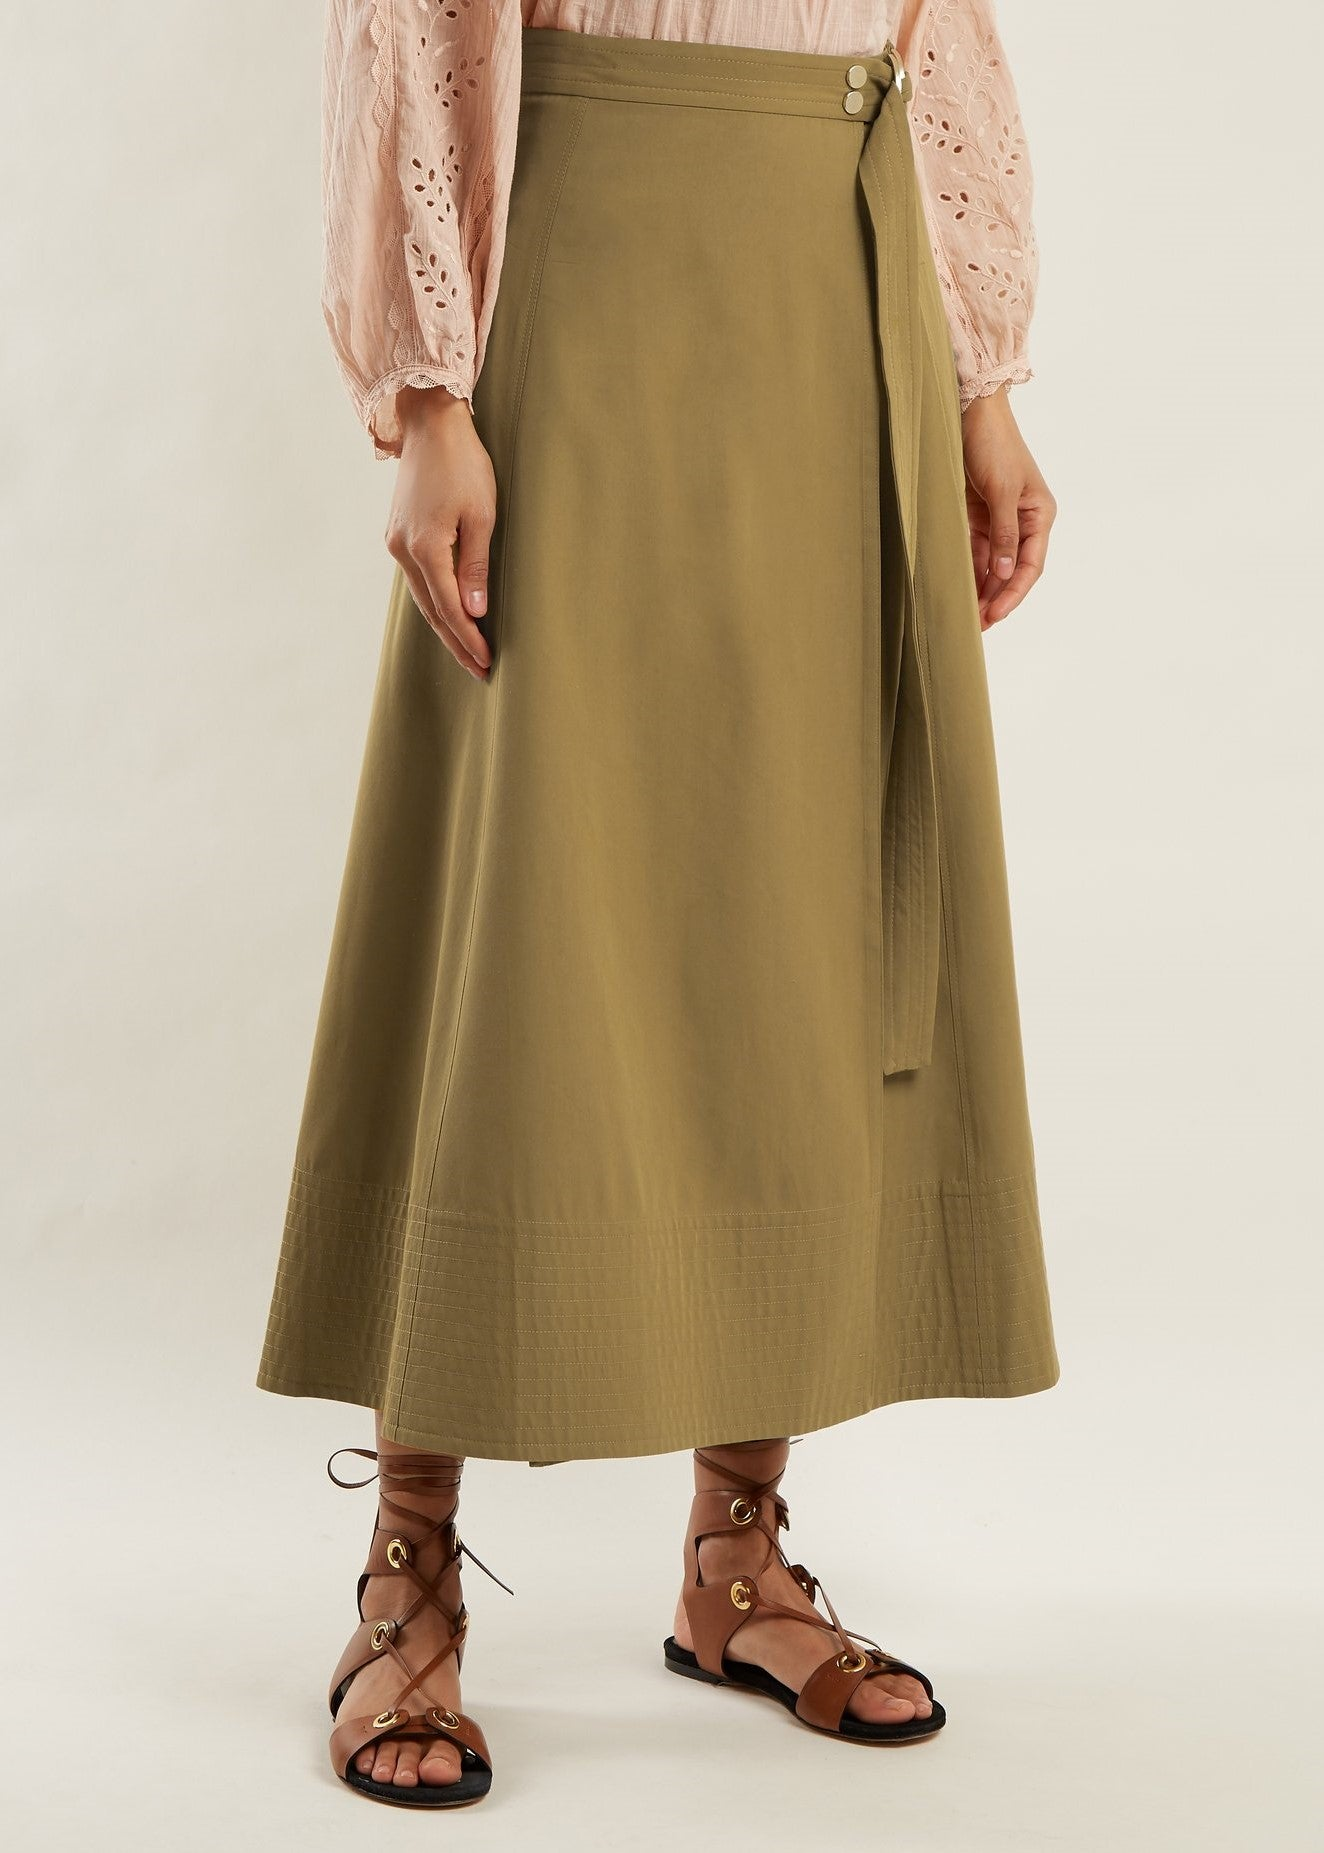 Vanessa Bruno Ikla skirt in Kaki